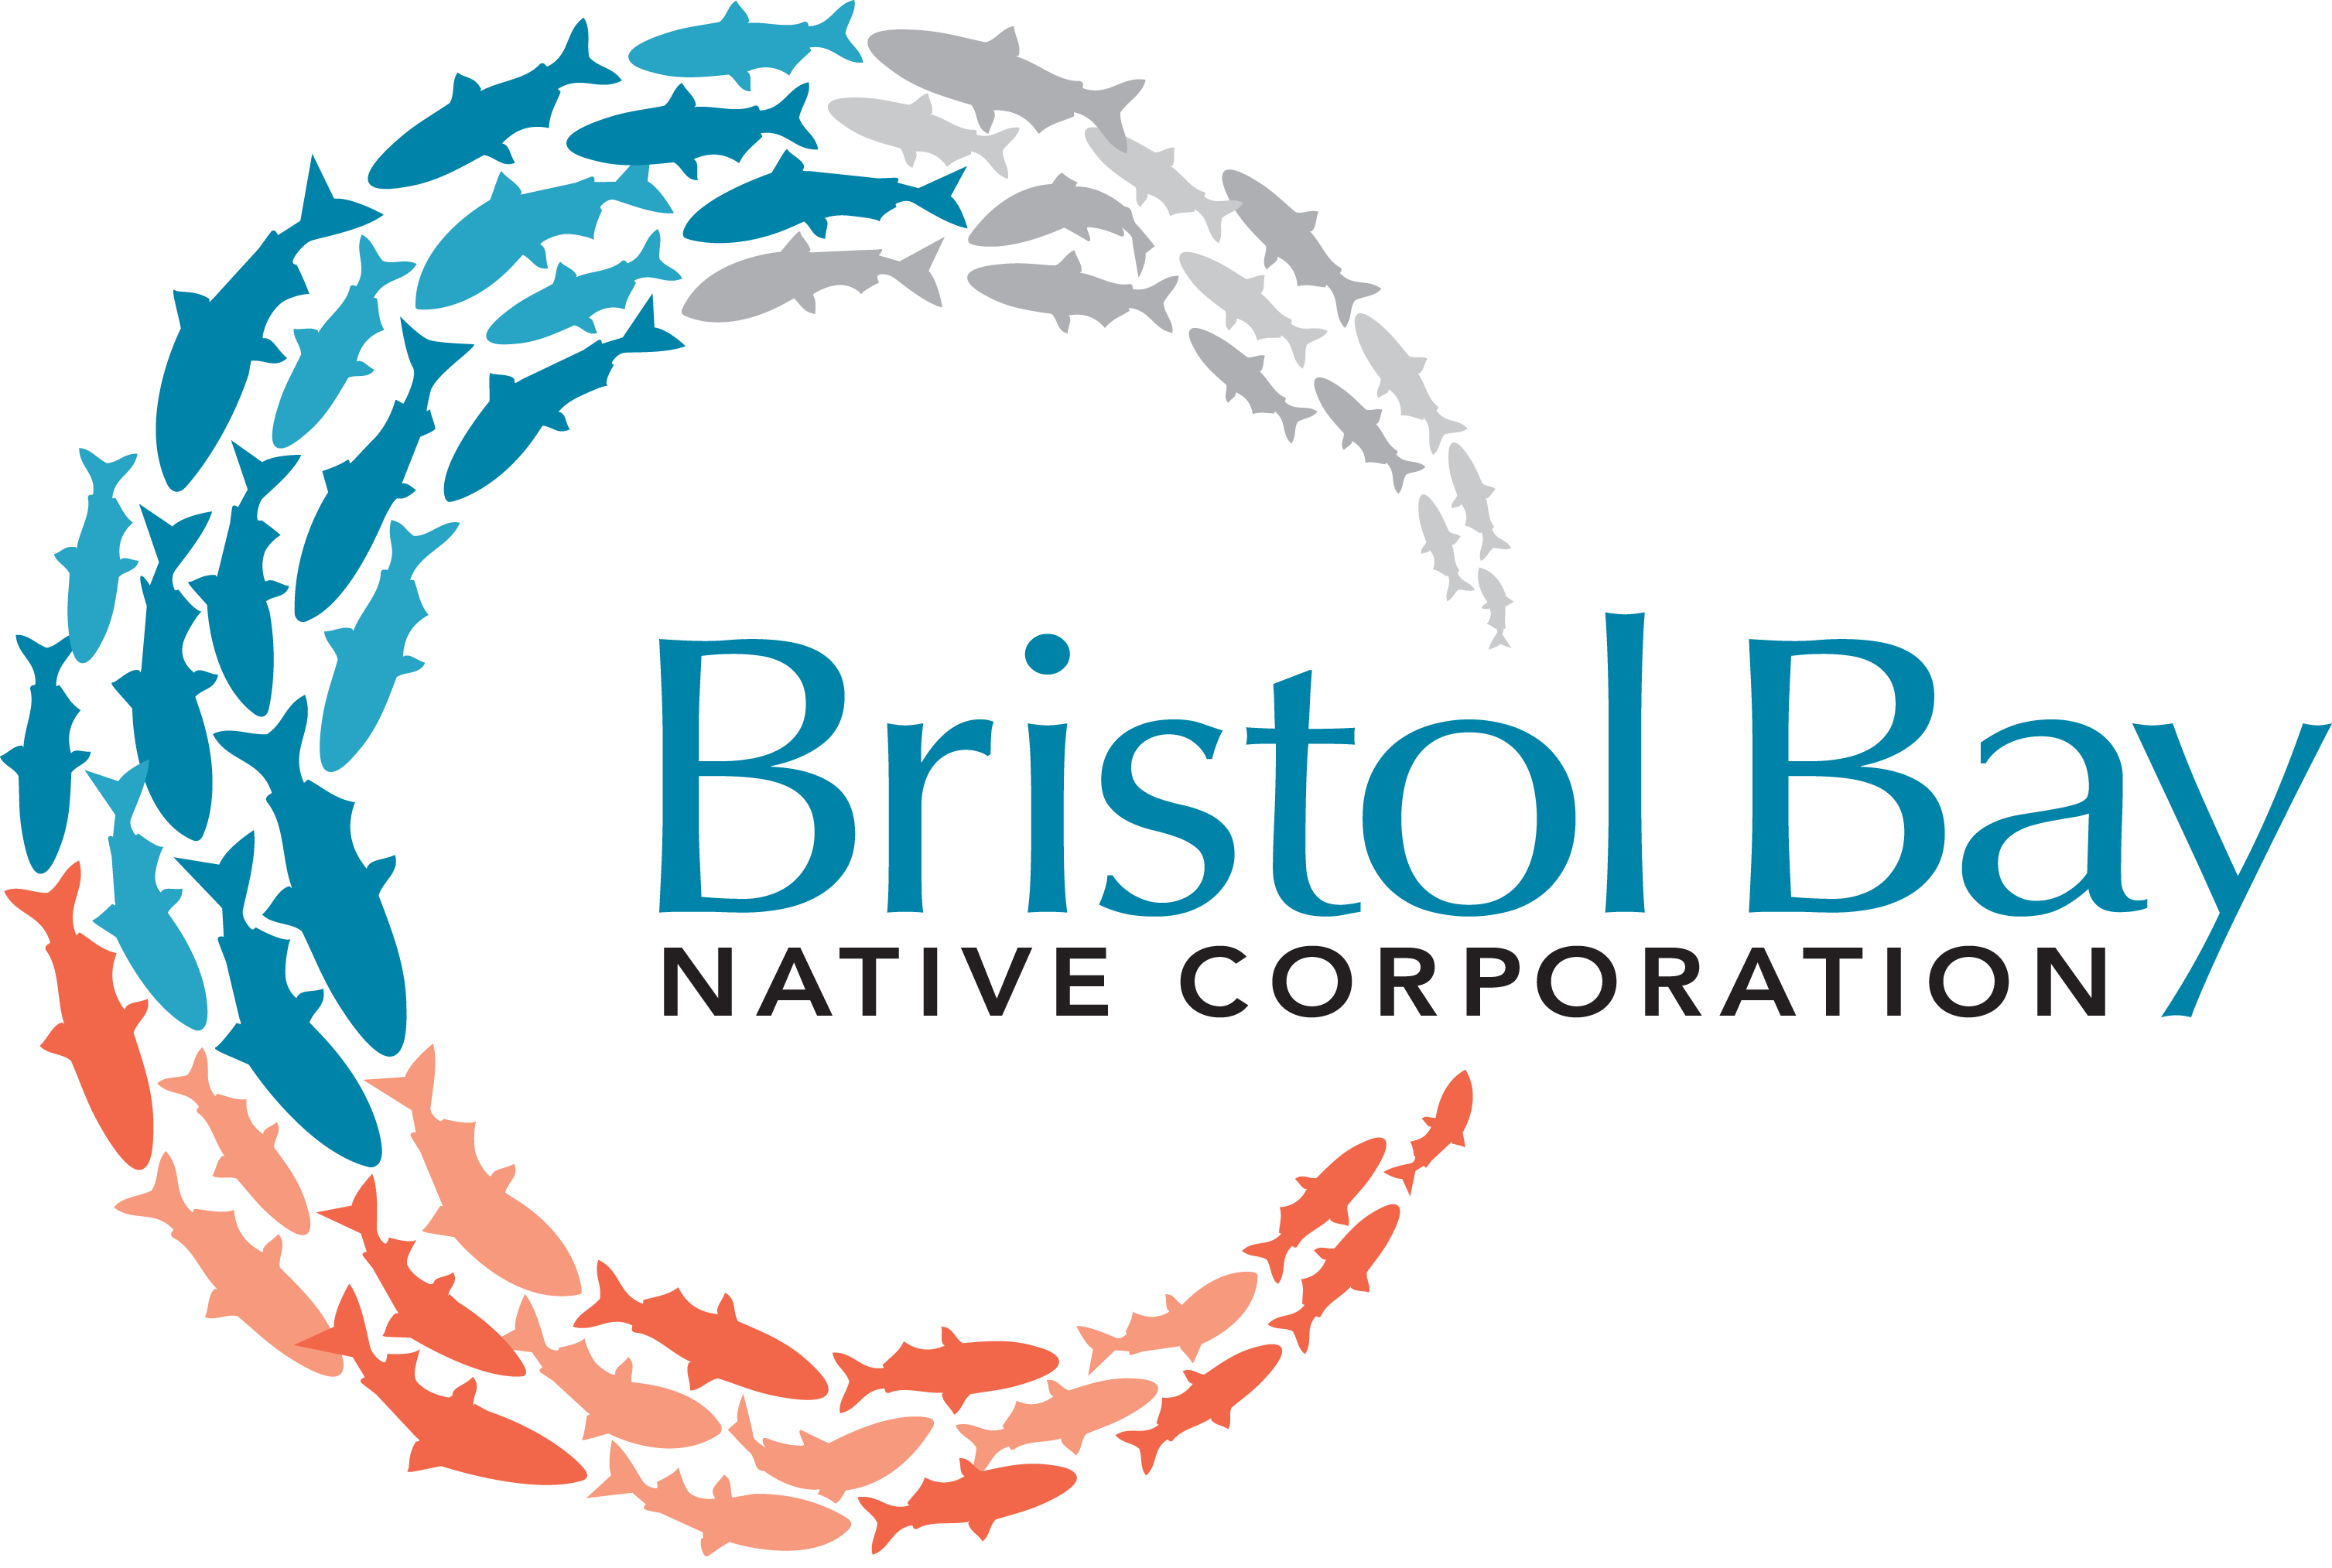 Bristol Bay Shared Services, LLC